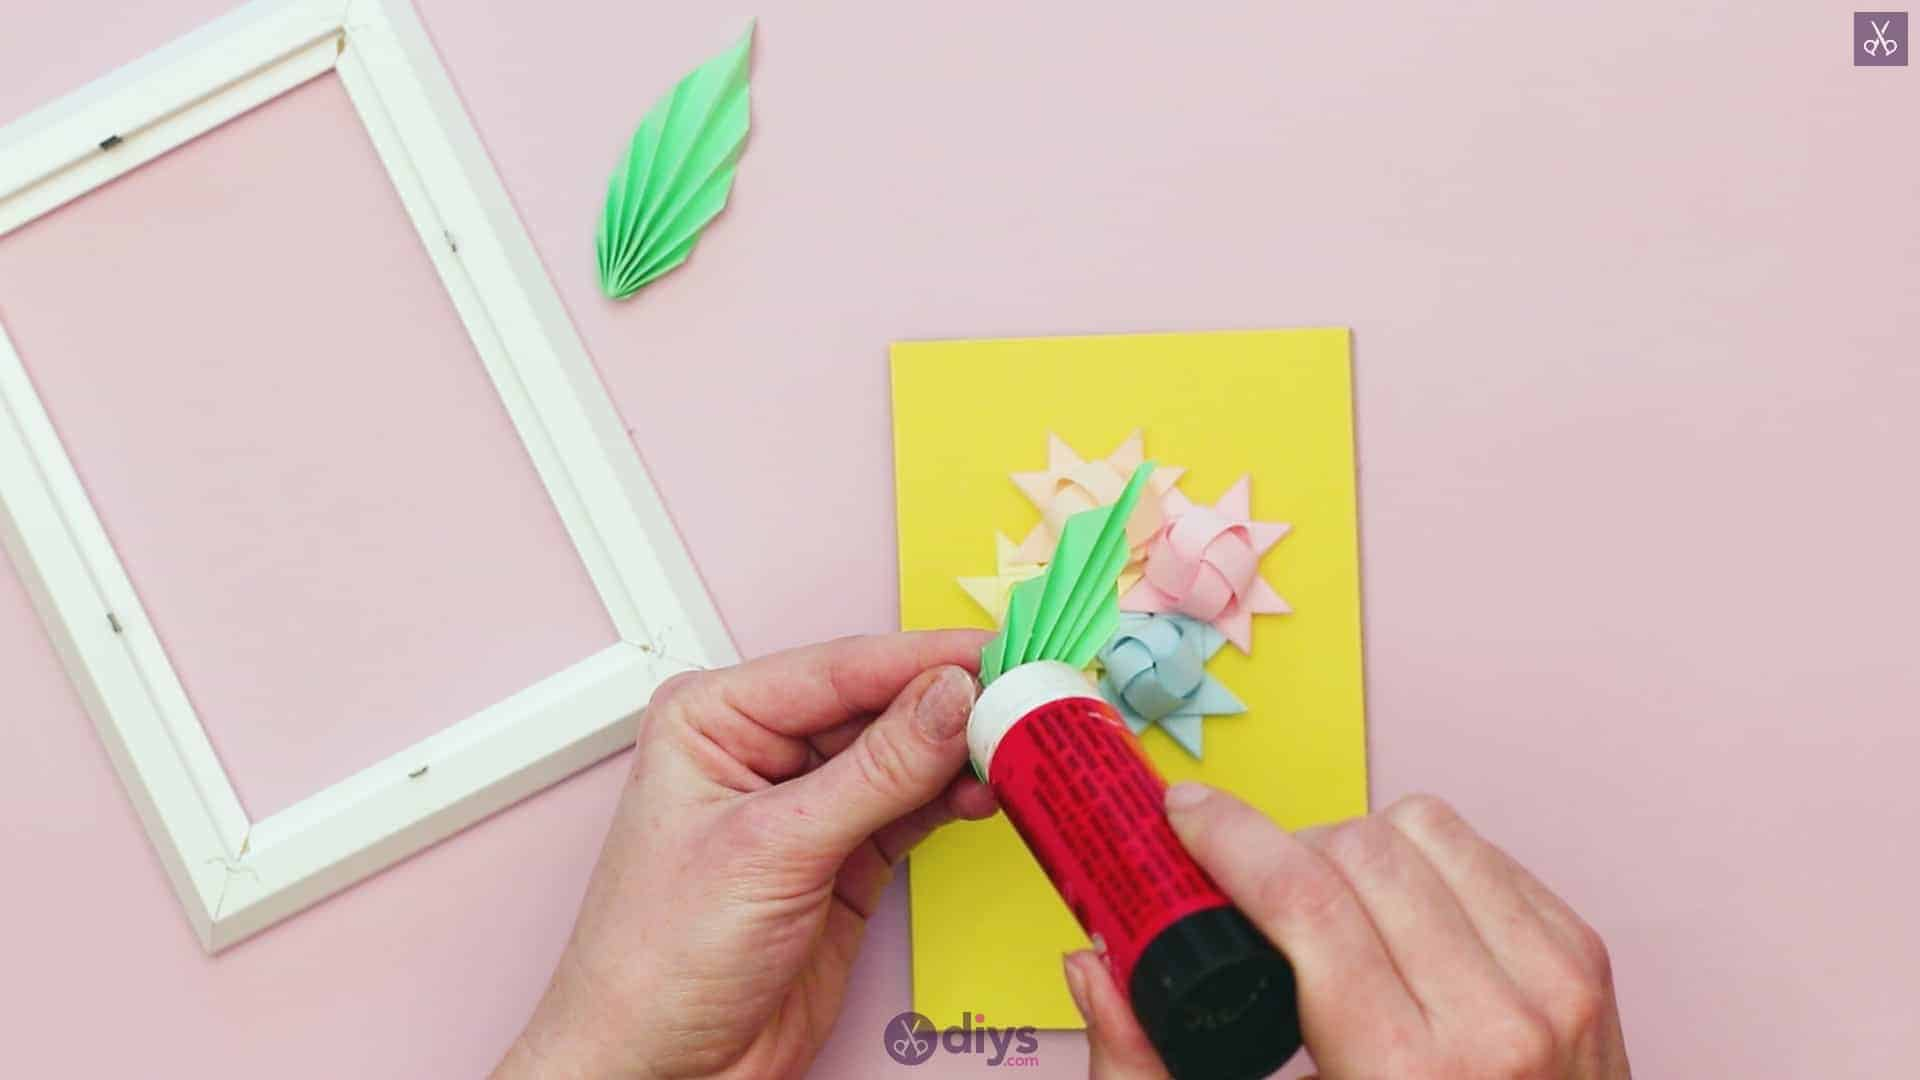 Diy origami flower art step 12r